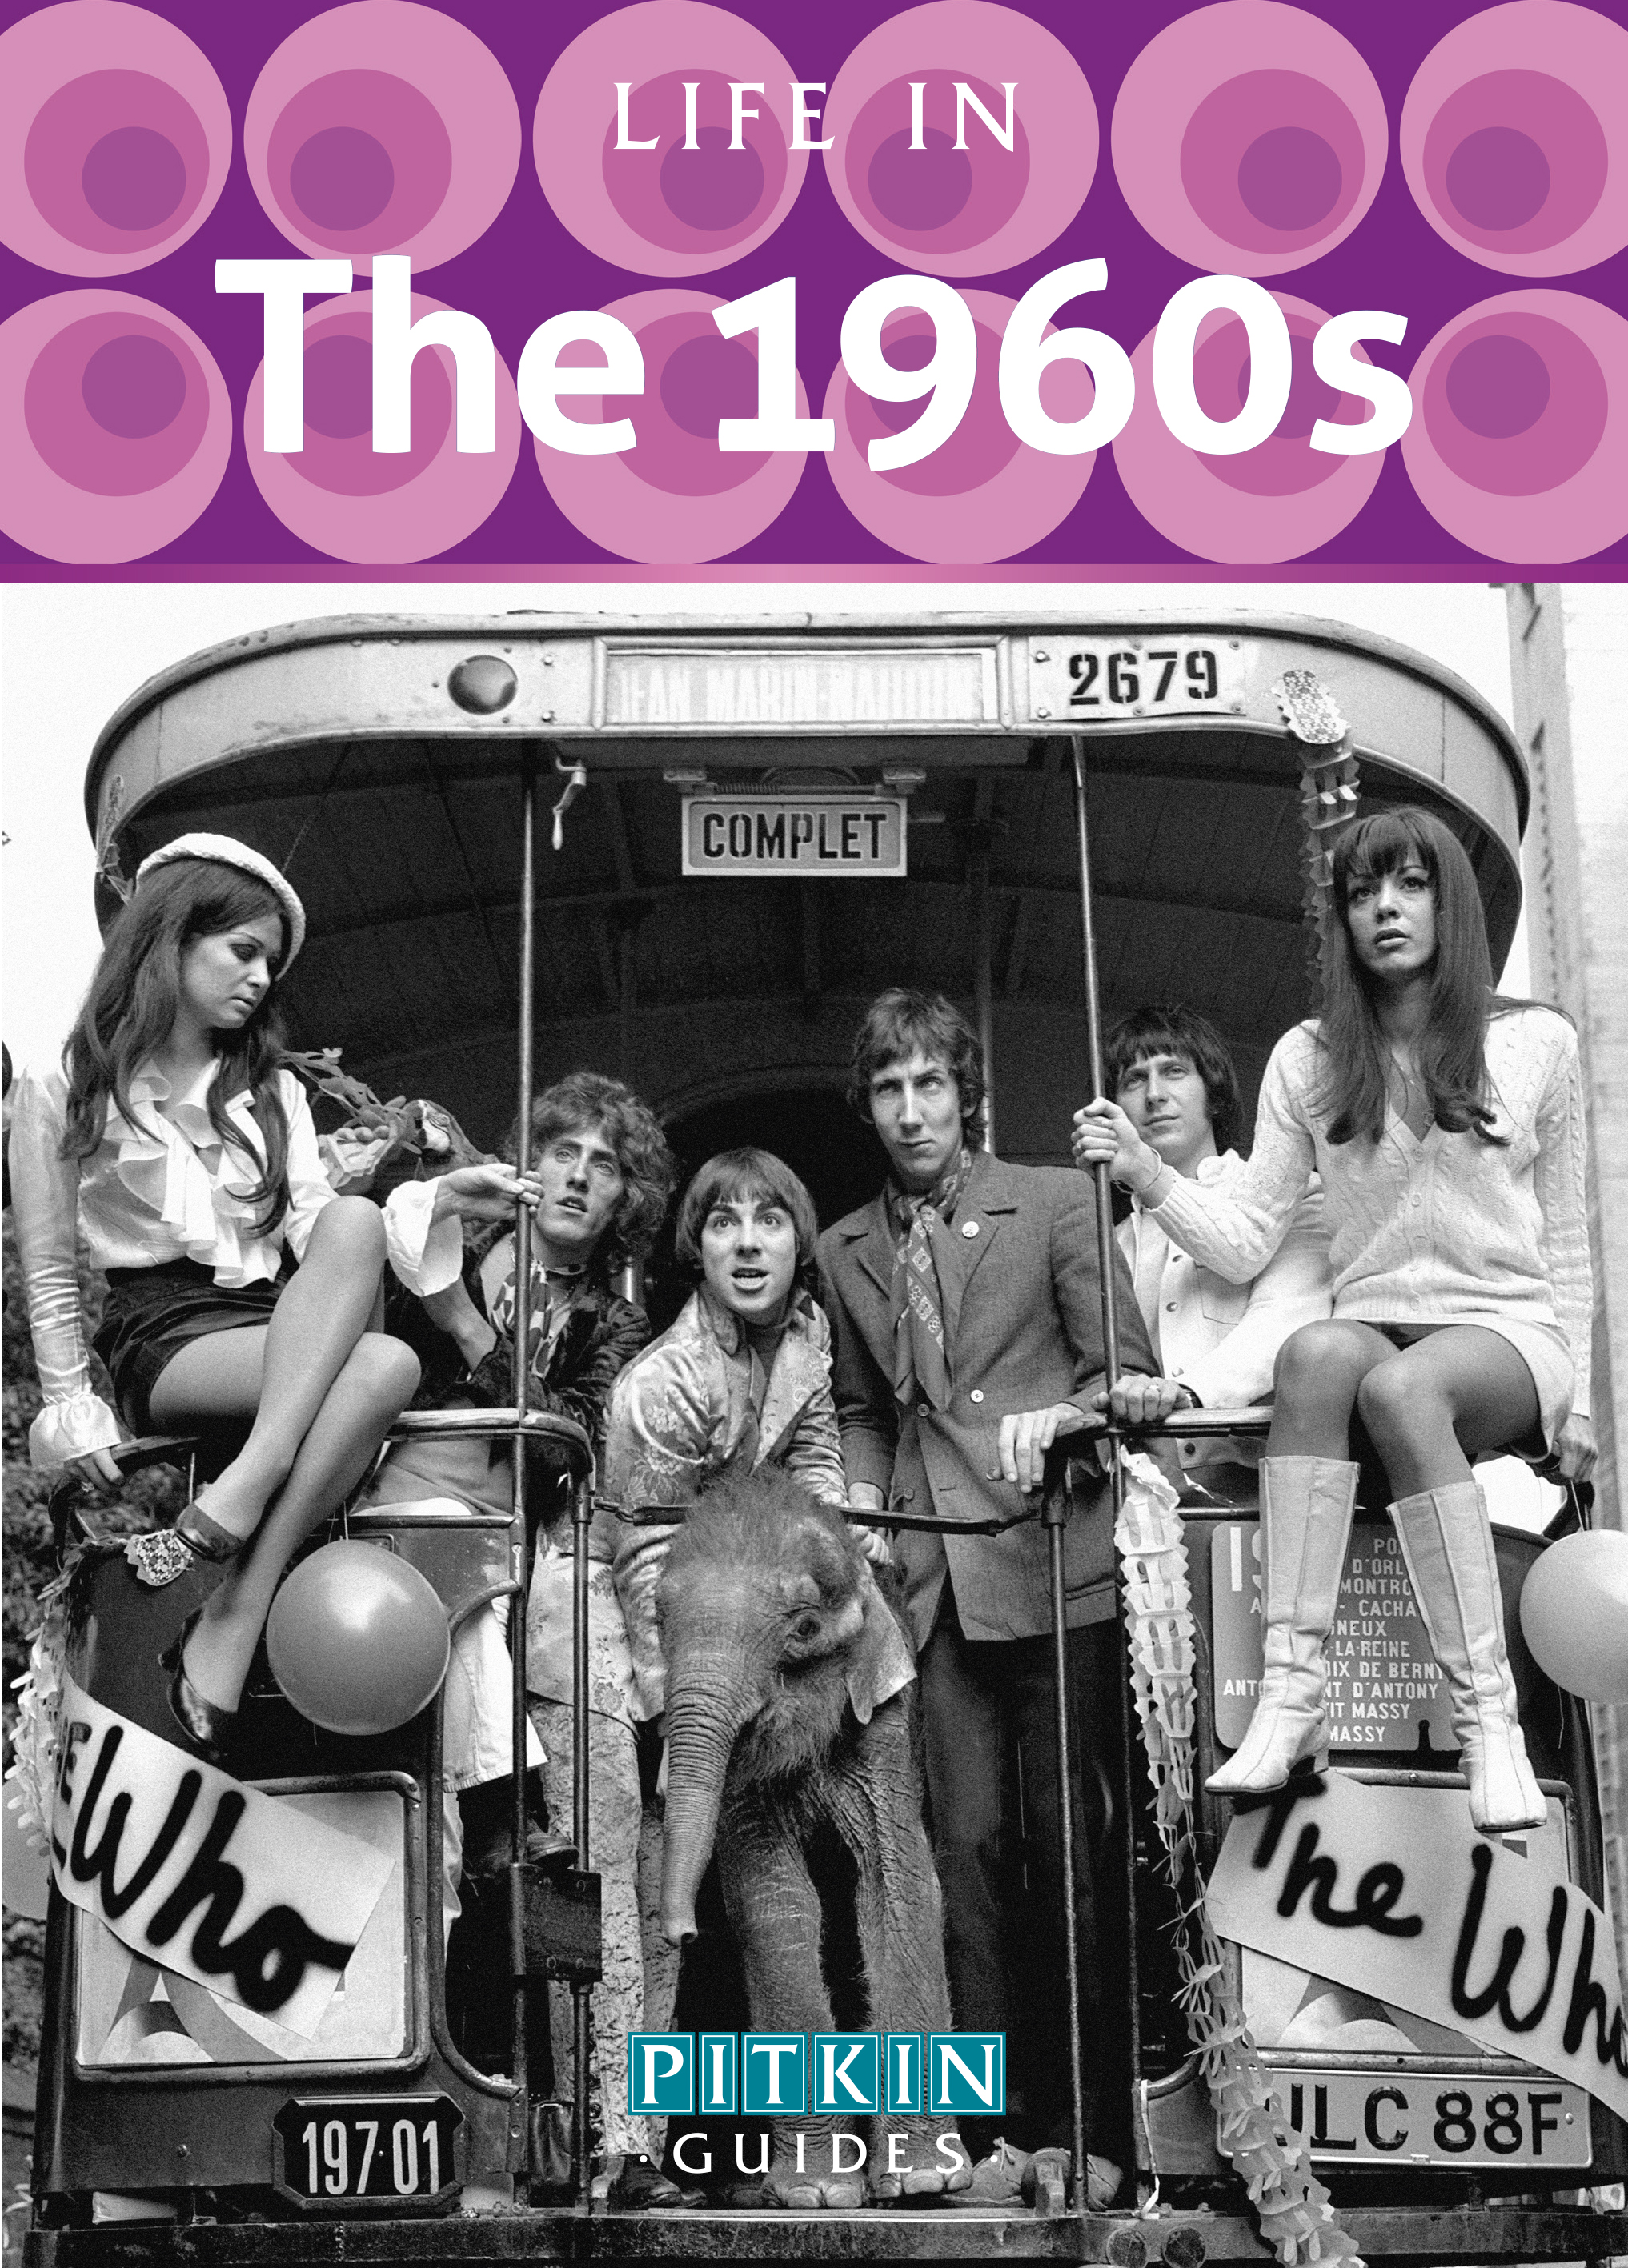 Life in the 1960s